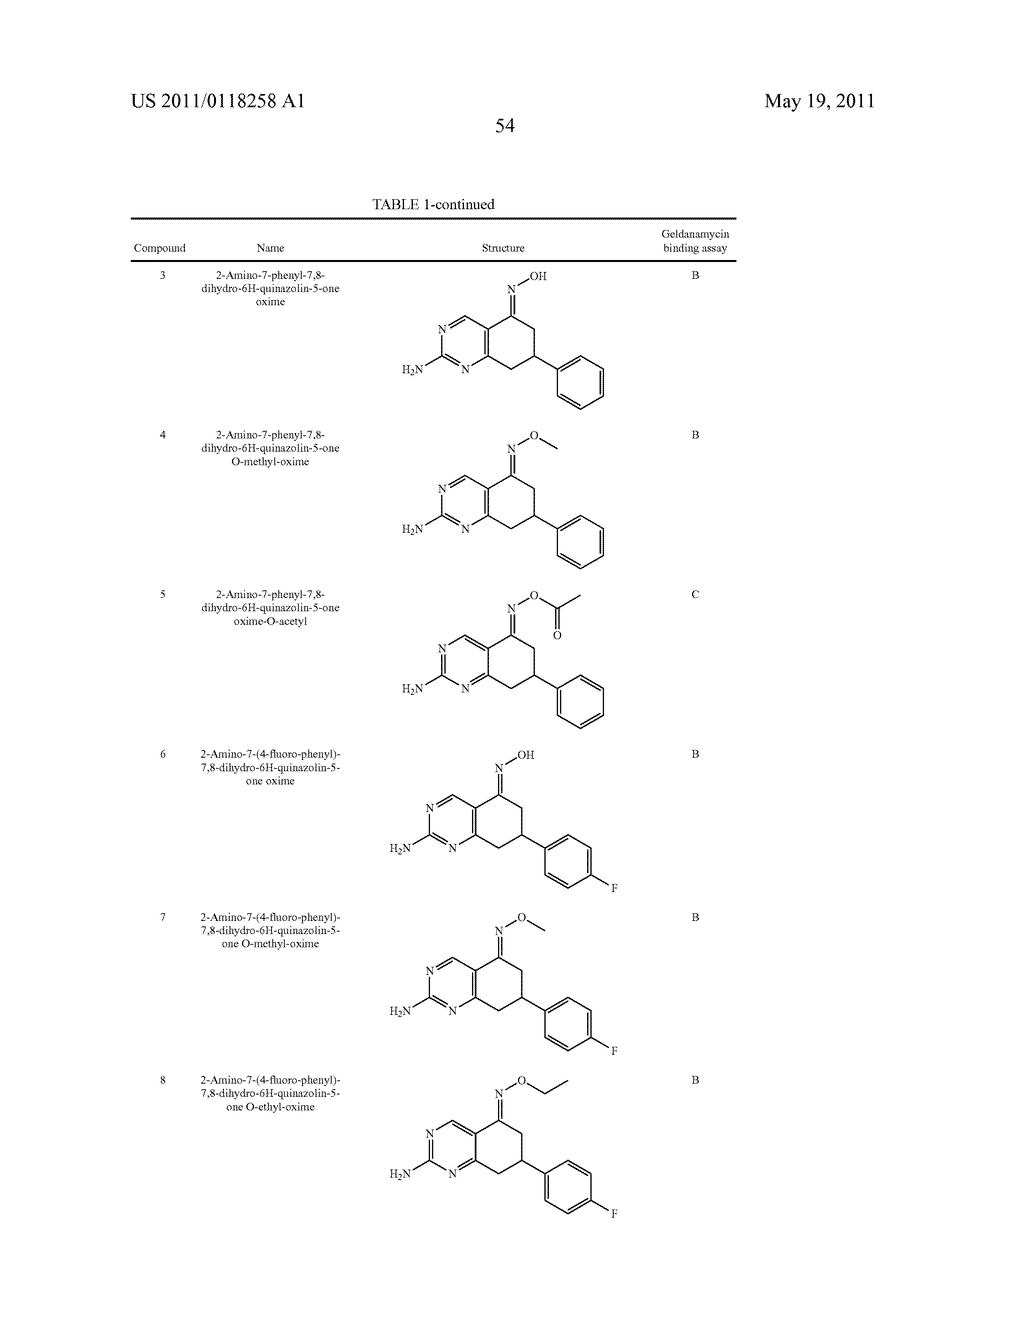 QUINAZOLIN-OXIME DERIVATIVES AS HSP90 INHIBITORS - diagram, schematic, and image 55